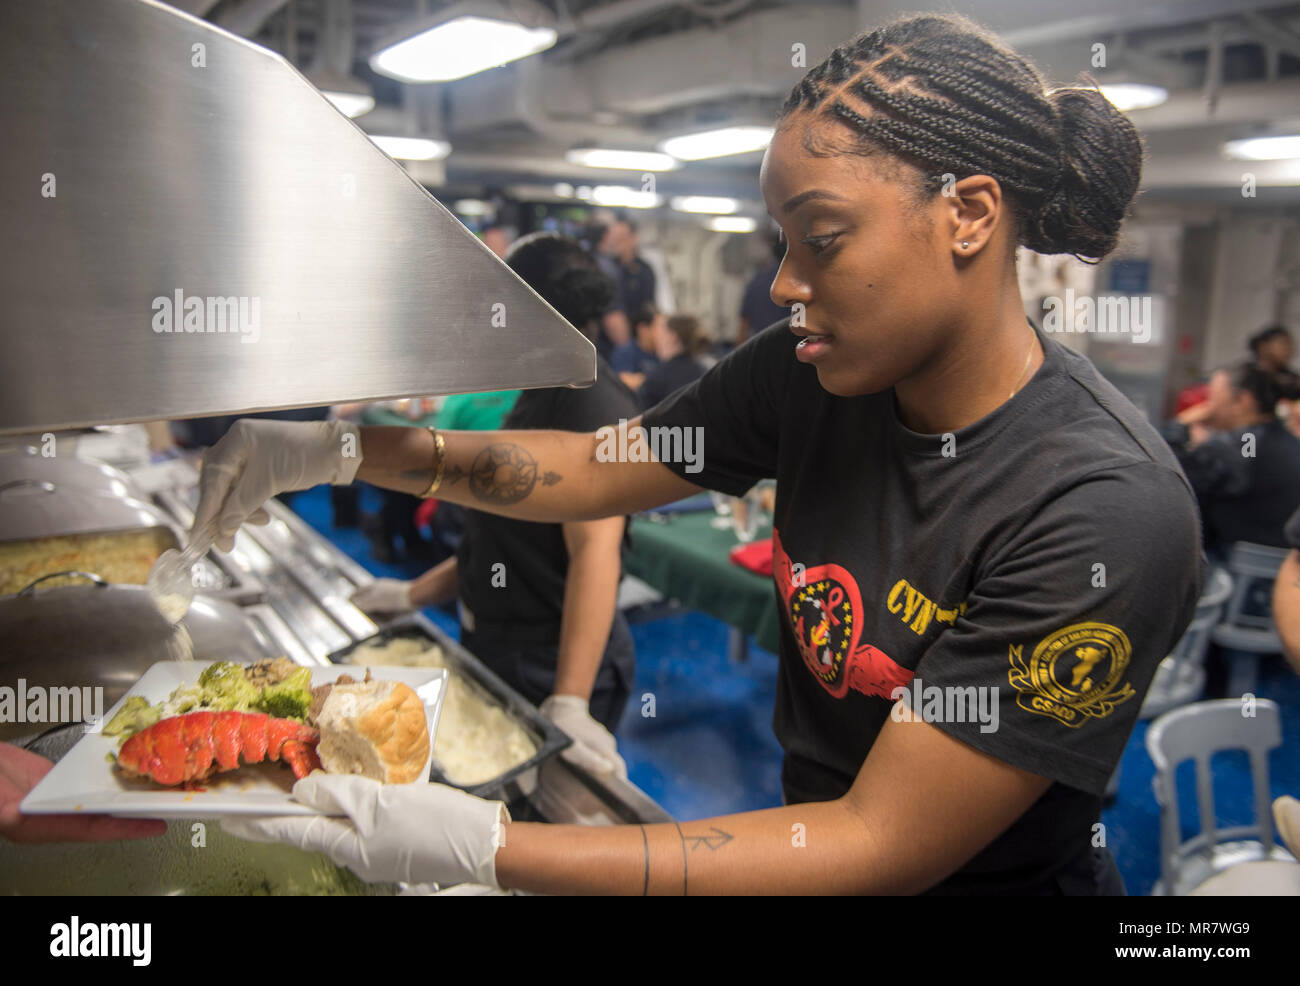 170520-N-FE442-035 ARABIAN GULF (May 20, 2017) Machinist's Mate 3rd Class Khiarea Deshazer prepares a plate for the Mother's Day dinner aboard the aircraft carrier USS George H.W. Bush (CVN 77) (GHWB). GHWB is deployed in the U.S. 5th Fleet area of operations in support of maritime security operations designed to reassure allies and partners, and preserve the freedom of navigation and the free flow of commerce in the region. (U.S. Navy photo by Mass Communication Specialist 3rd Class Matt Matlage/Released) - Stock Image